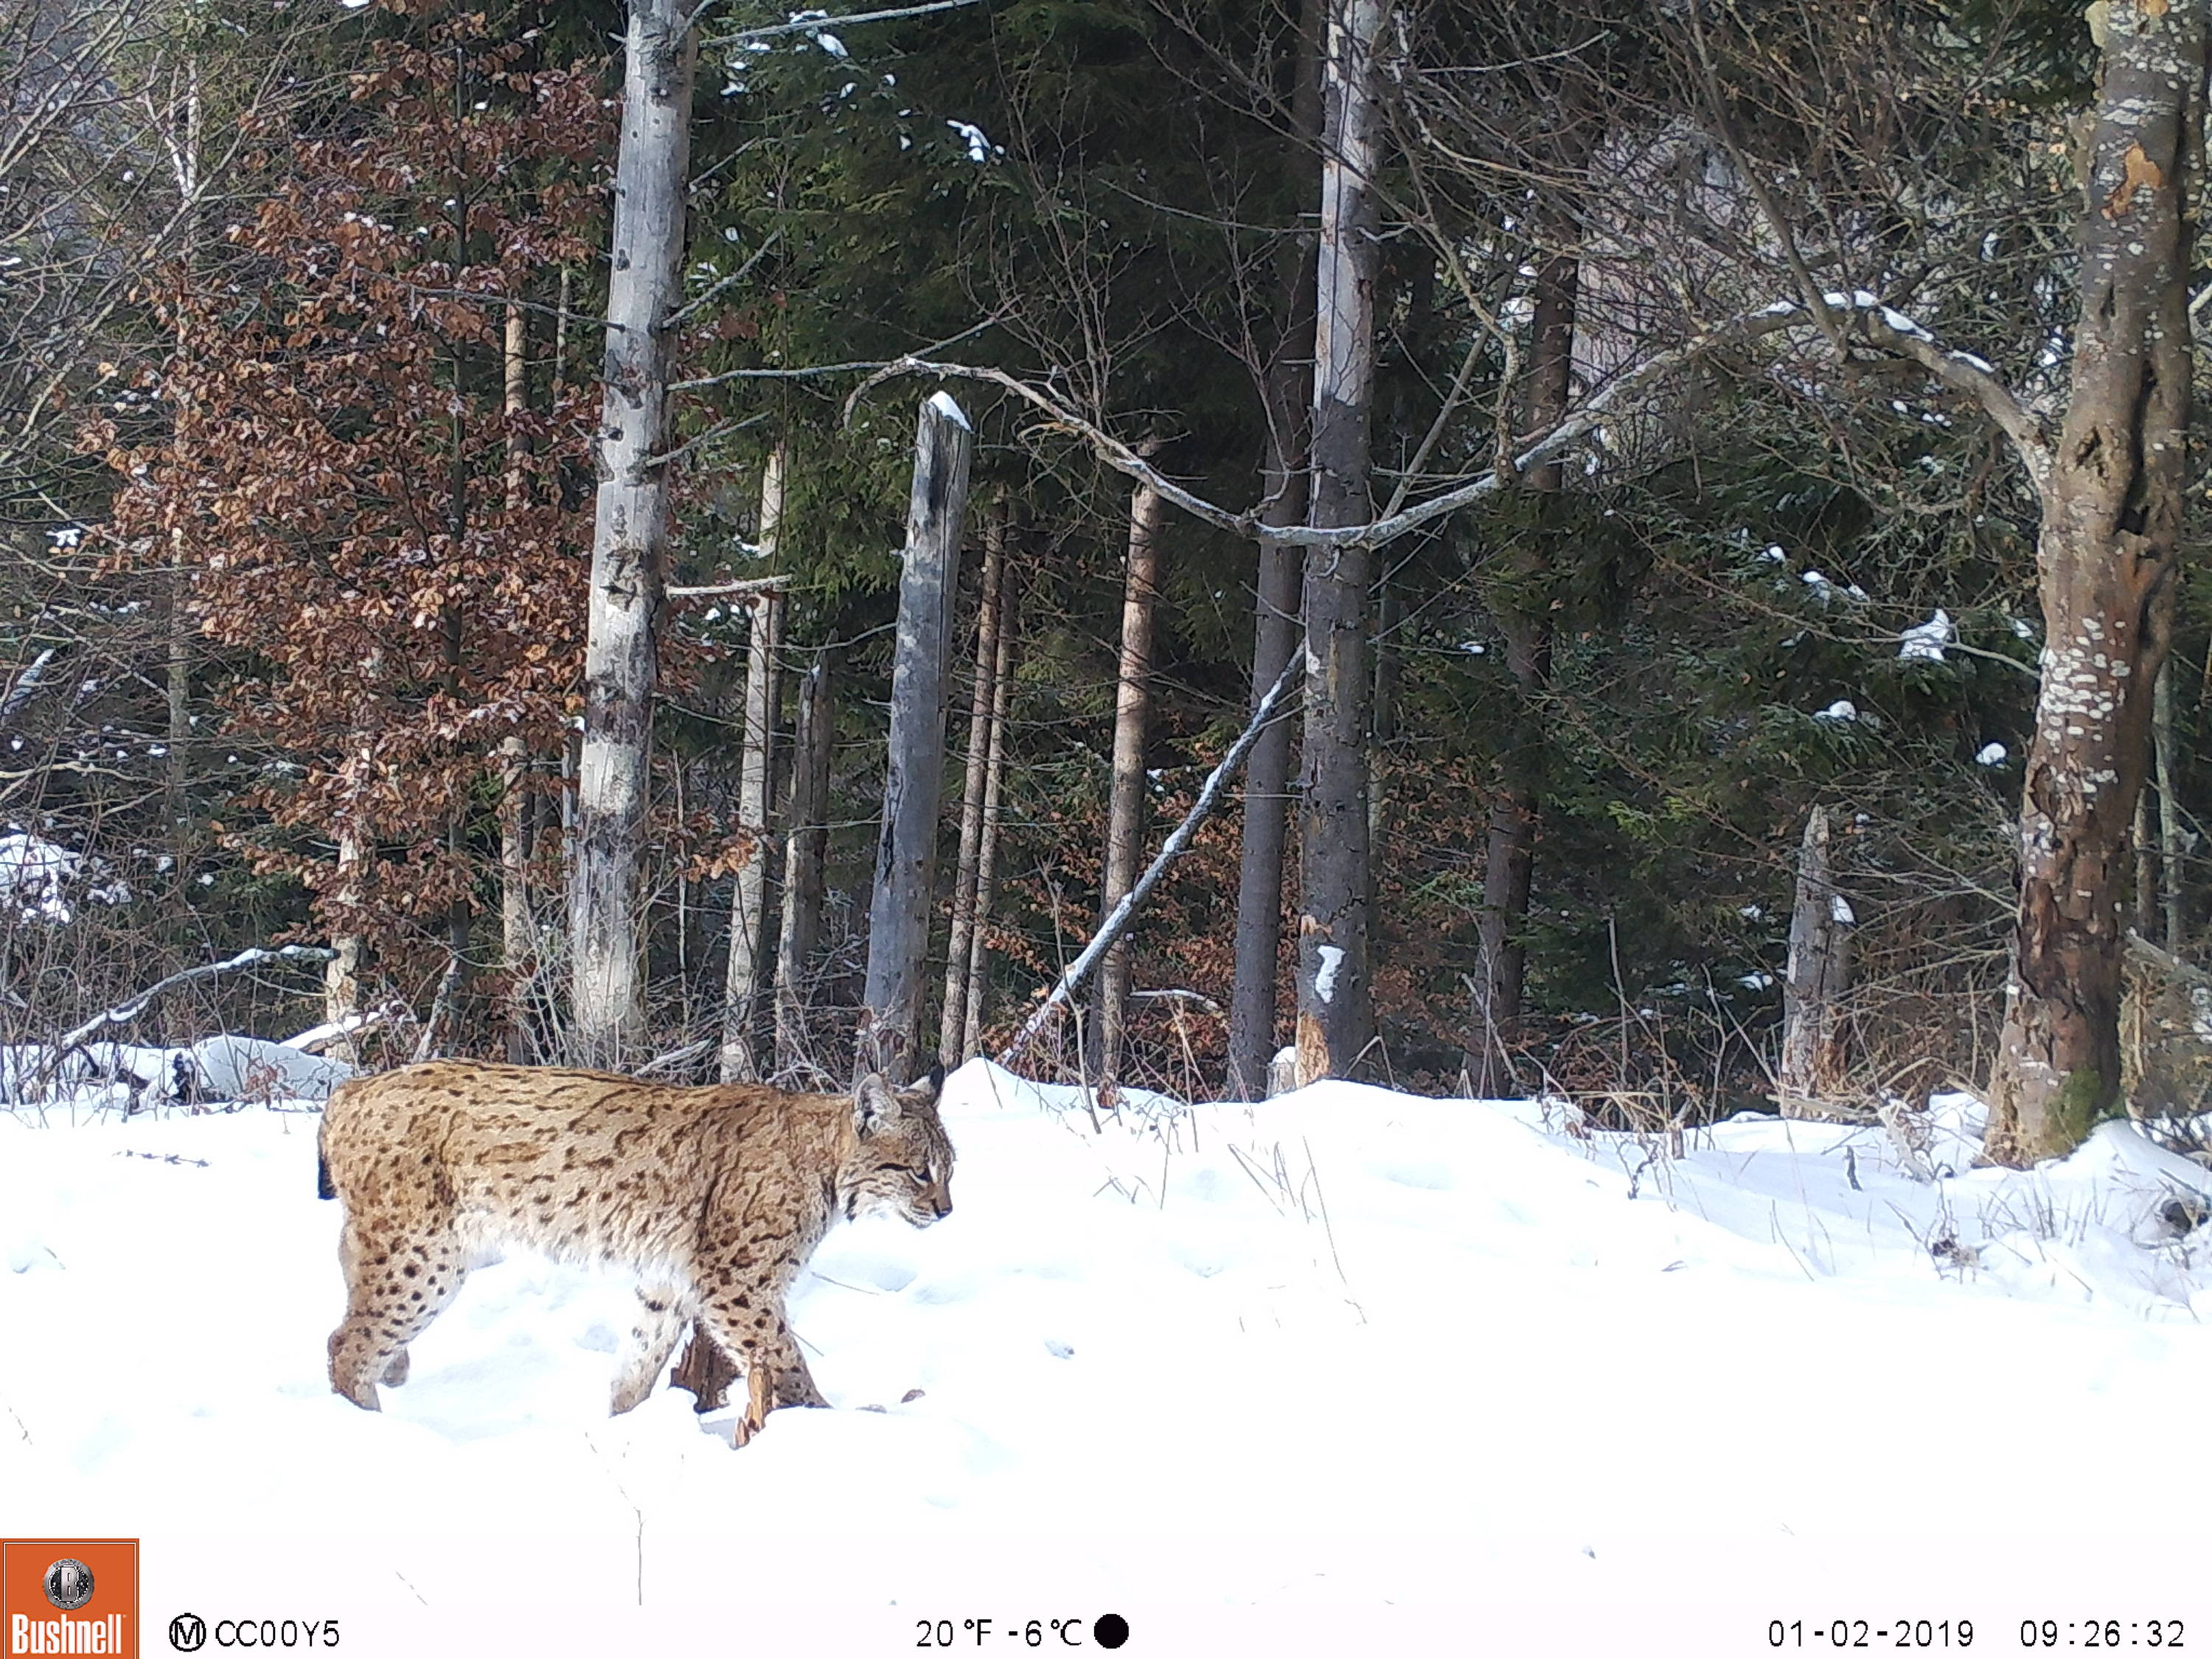 A camera trap captures a lynx walking through a snowy trail in the forest